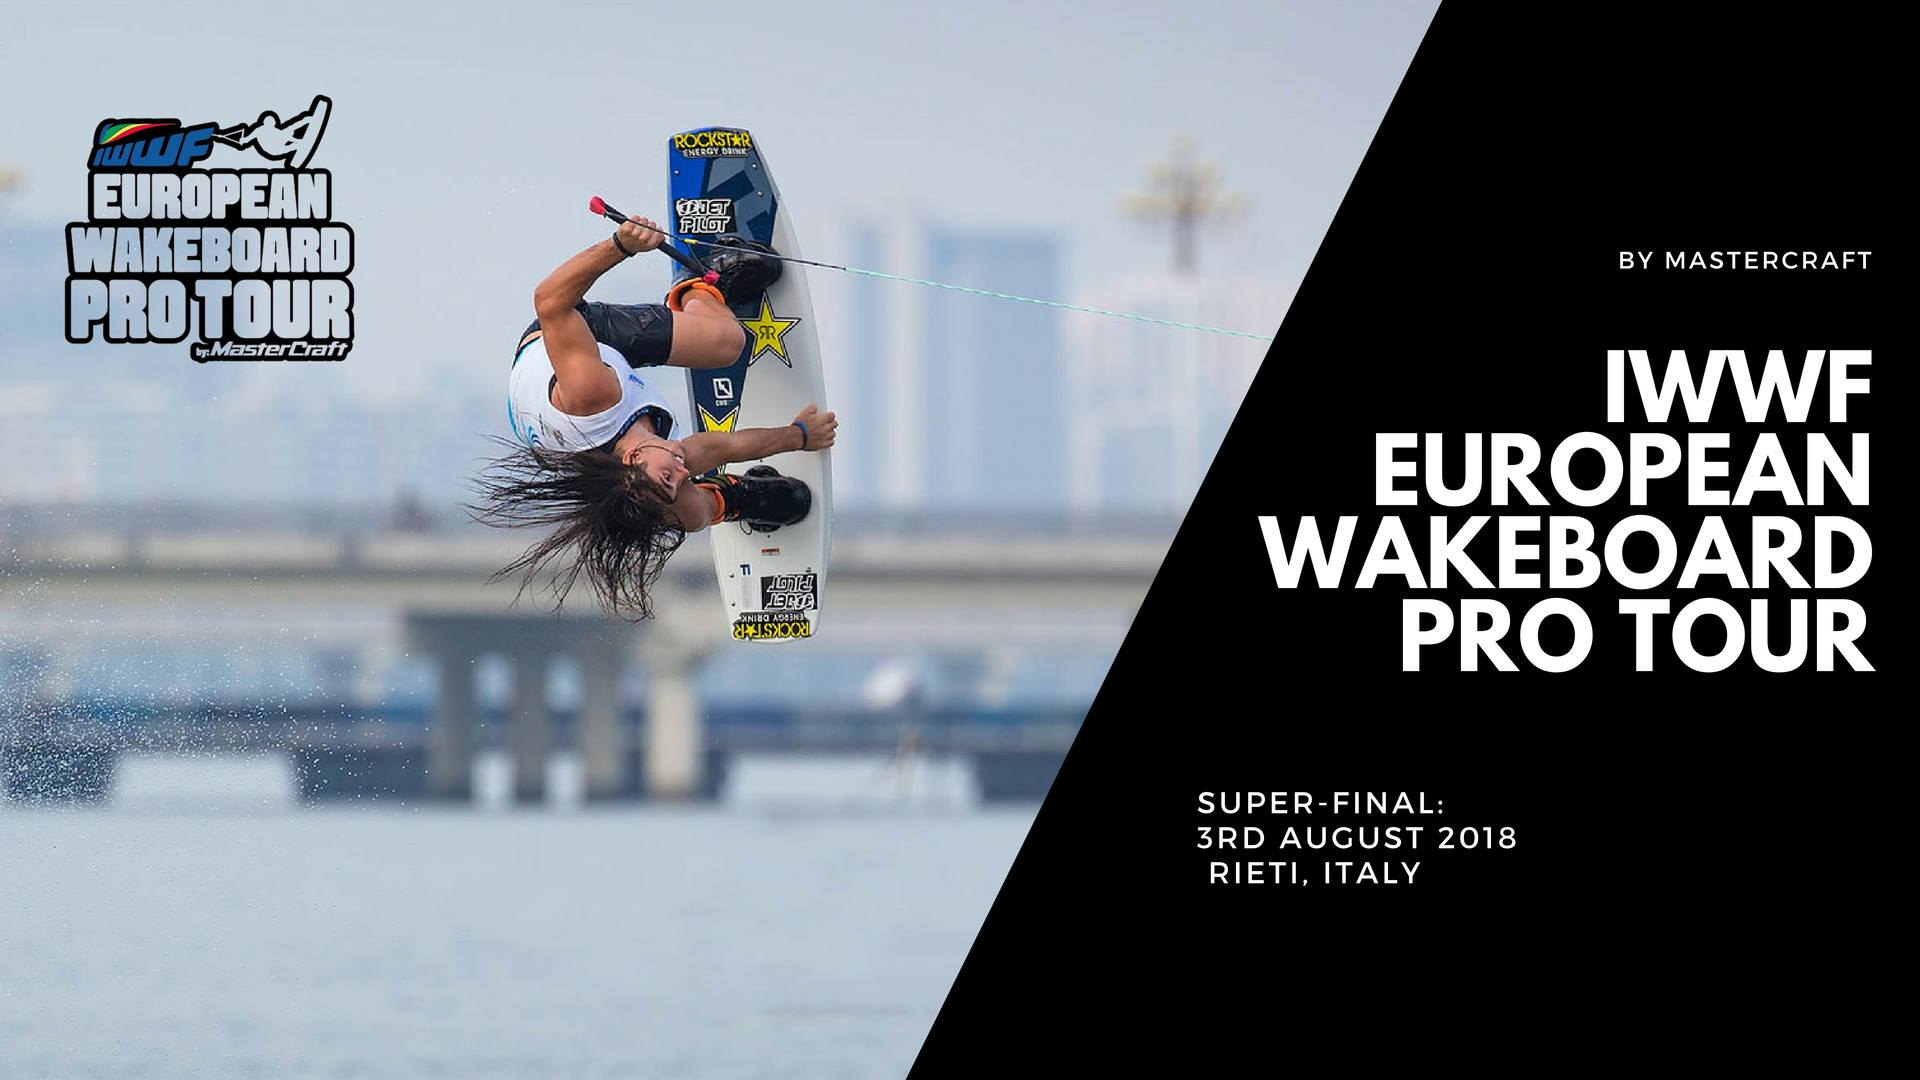 Super Finale: 2018 IWWF European Wakeboard PRO TOUR